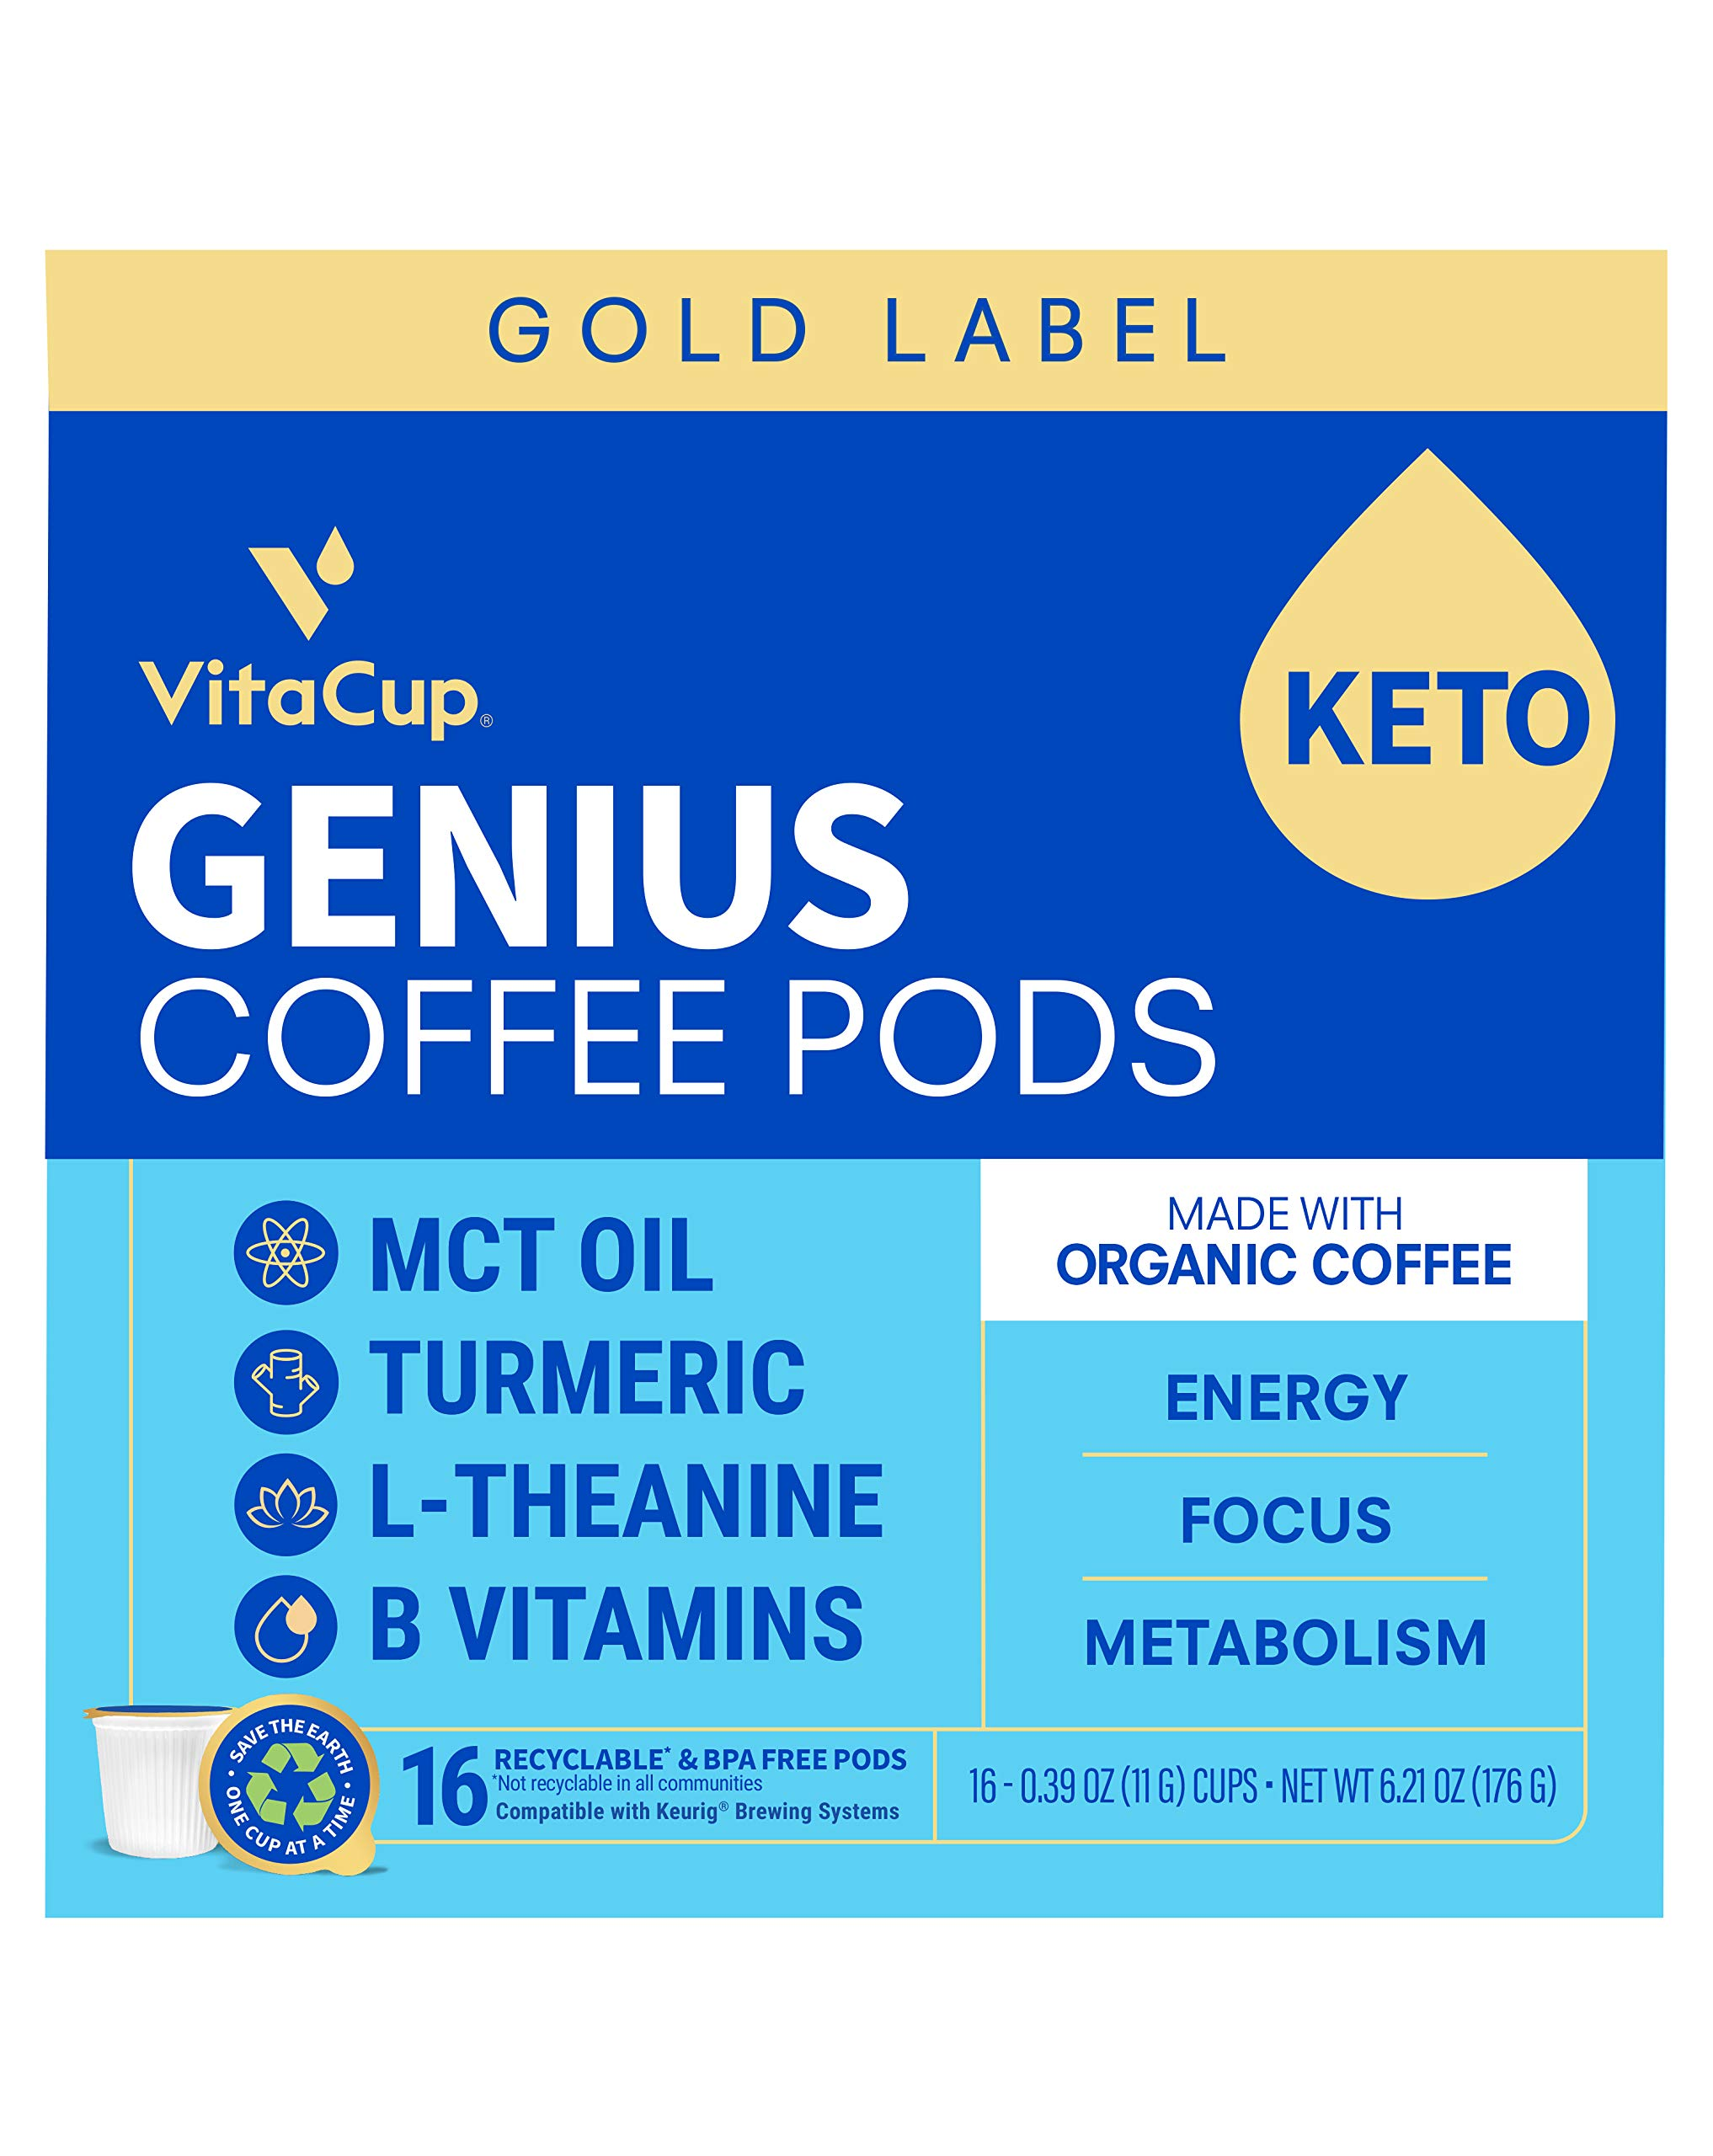 VitaCup Gold Label Genius Organic Coffee Pod with MCT, Turmeric, L-Theanine, B & D3 Vitamins for Keto Energy, Focus, & Metabolism in Recyclable Single Serve Pods Compatible with K-Cup Brewers, 16 CT